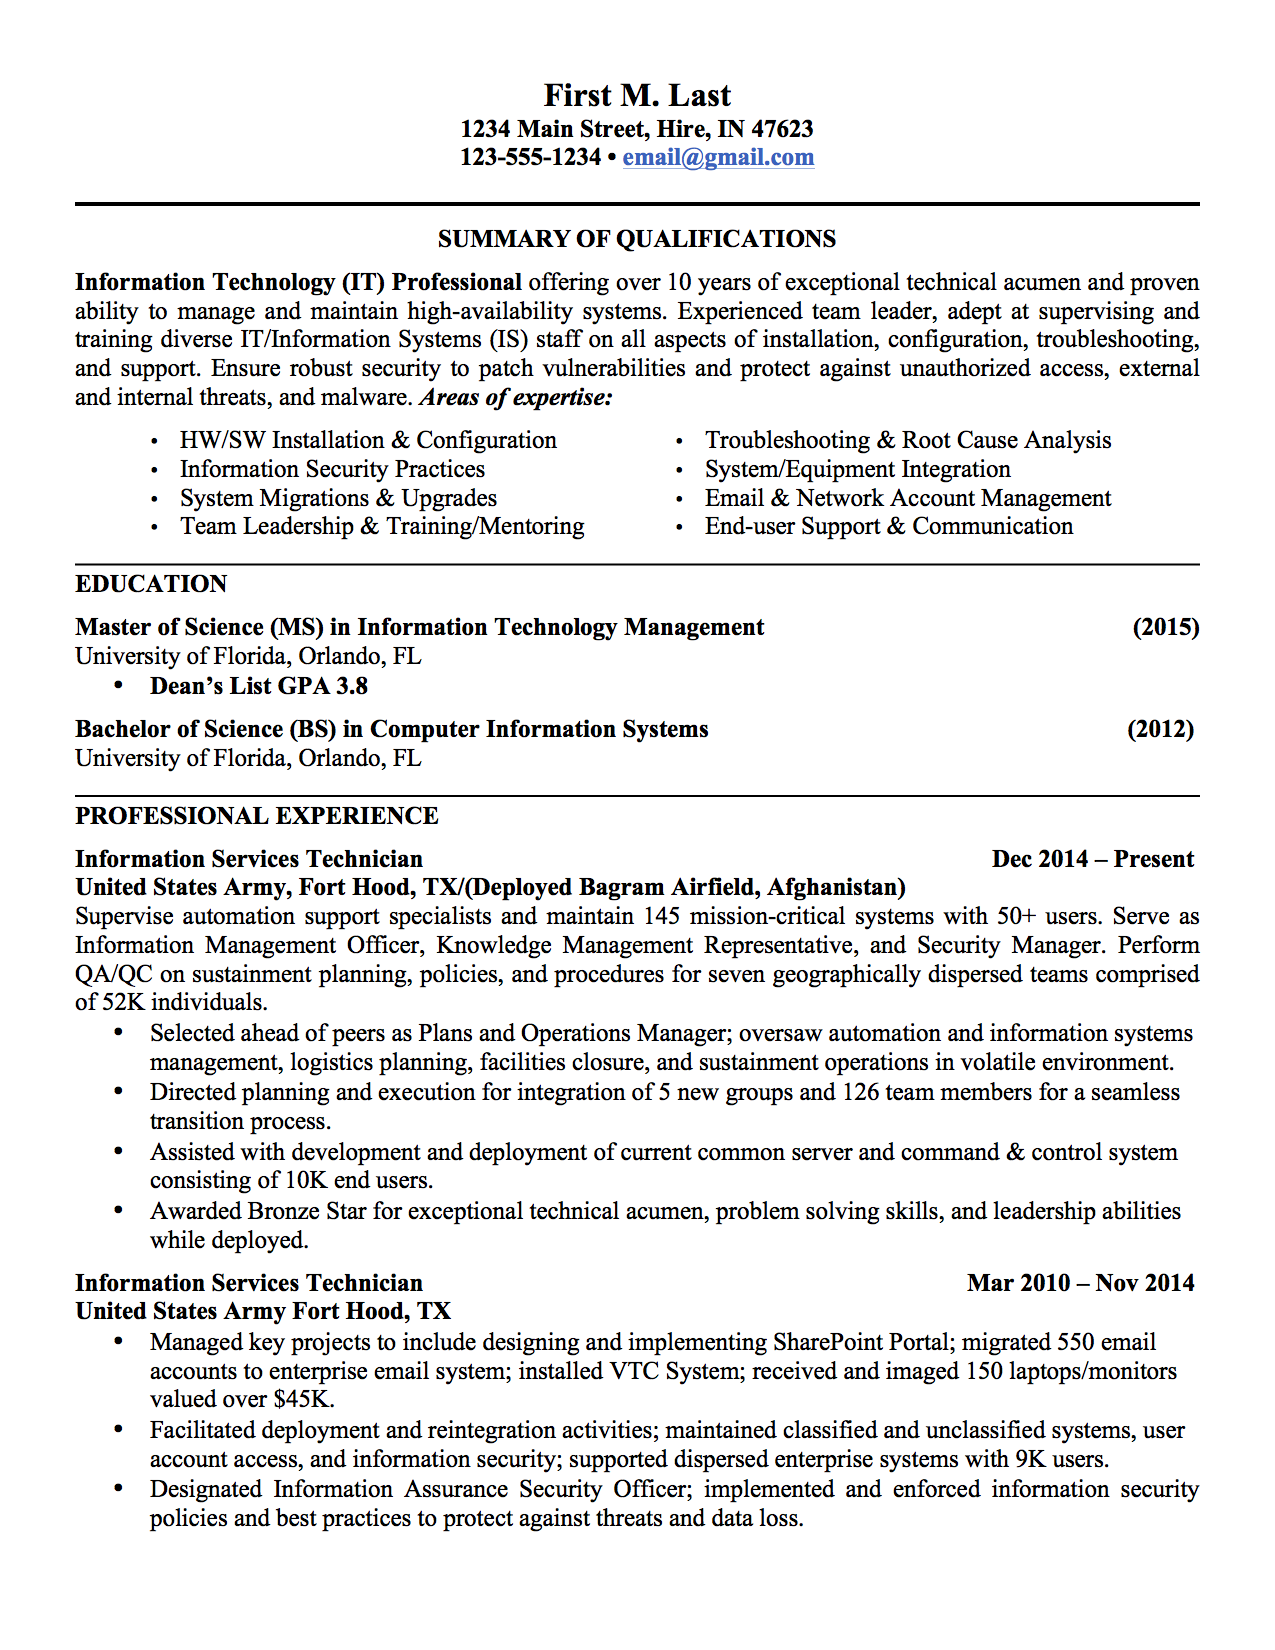 6 Sample MilitarytoCivilian Resumes Hirepurpose